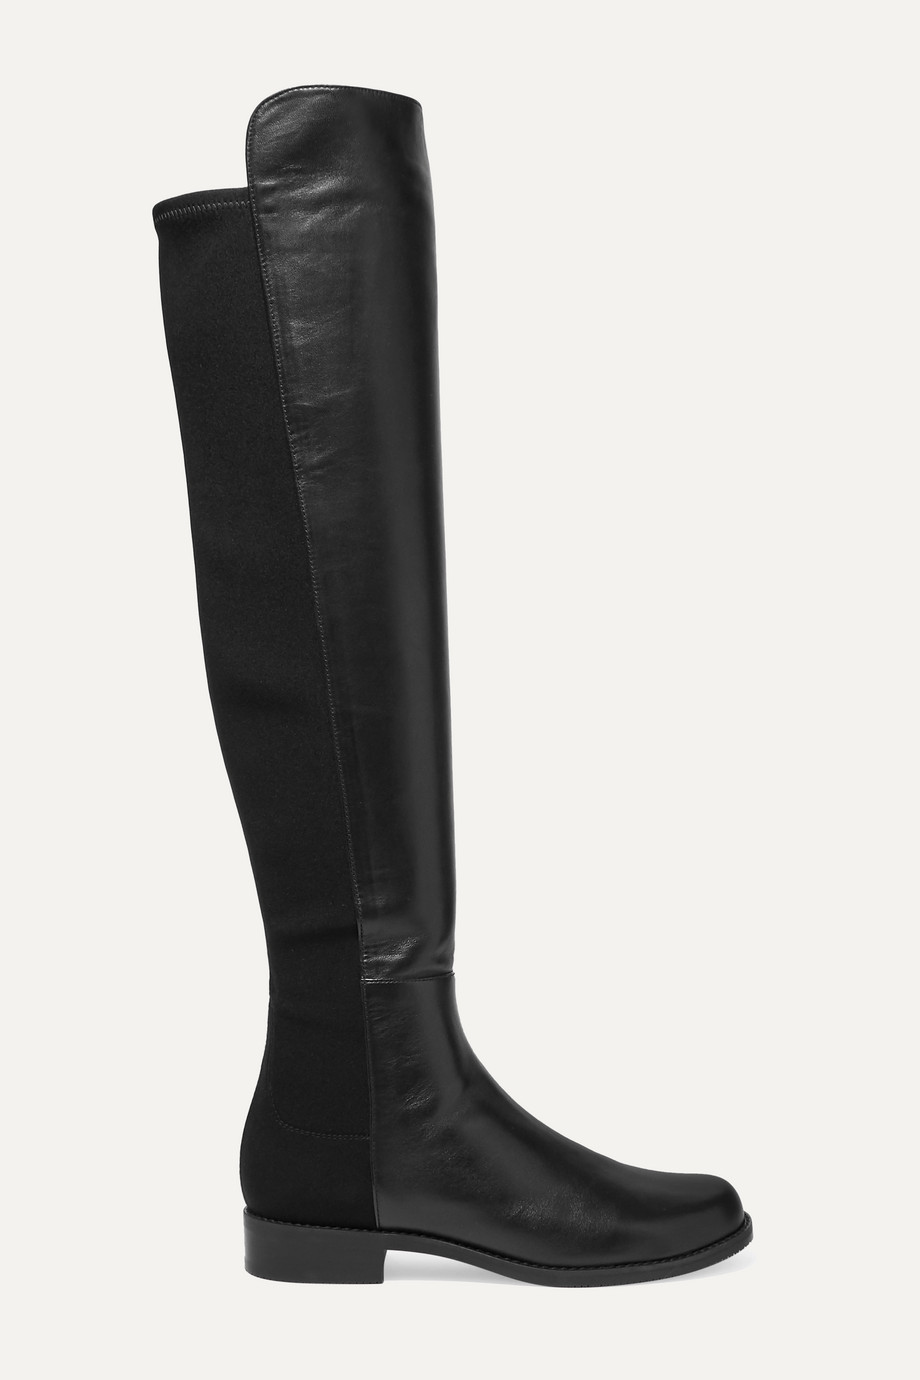 Stuart Weitzman 5050 leather and neoprene knee boots